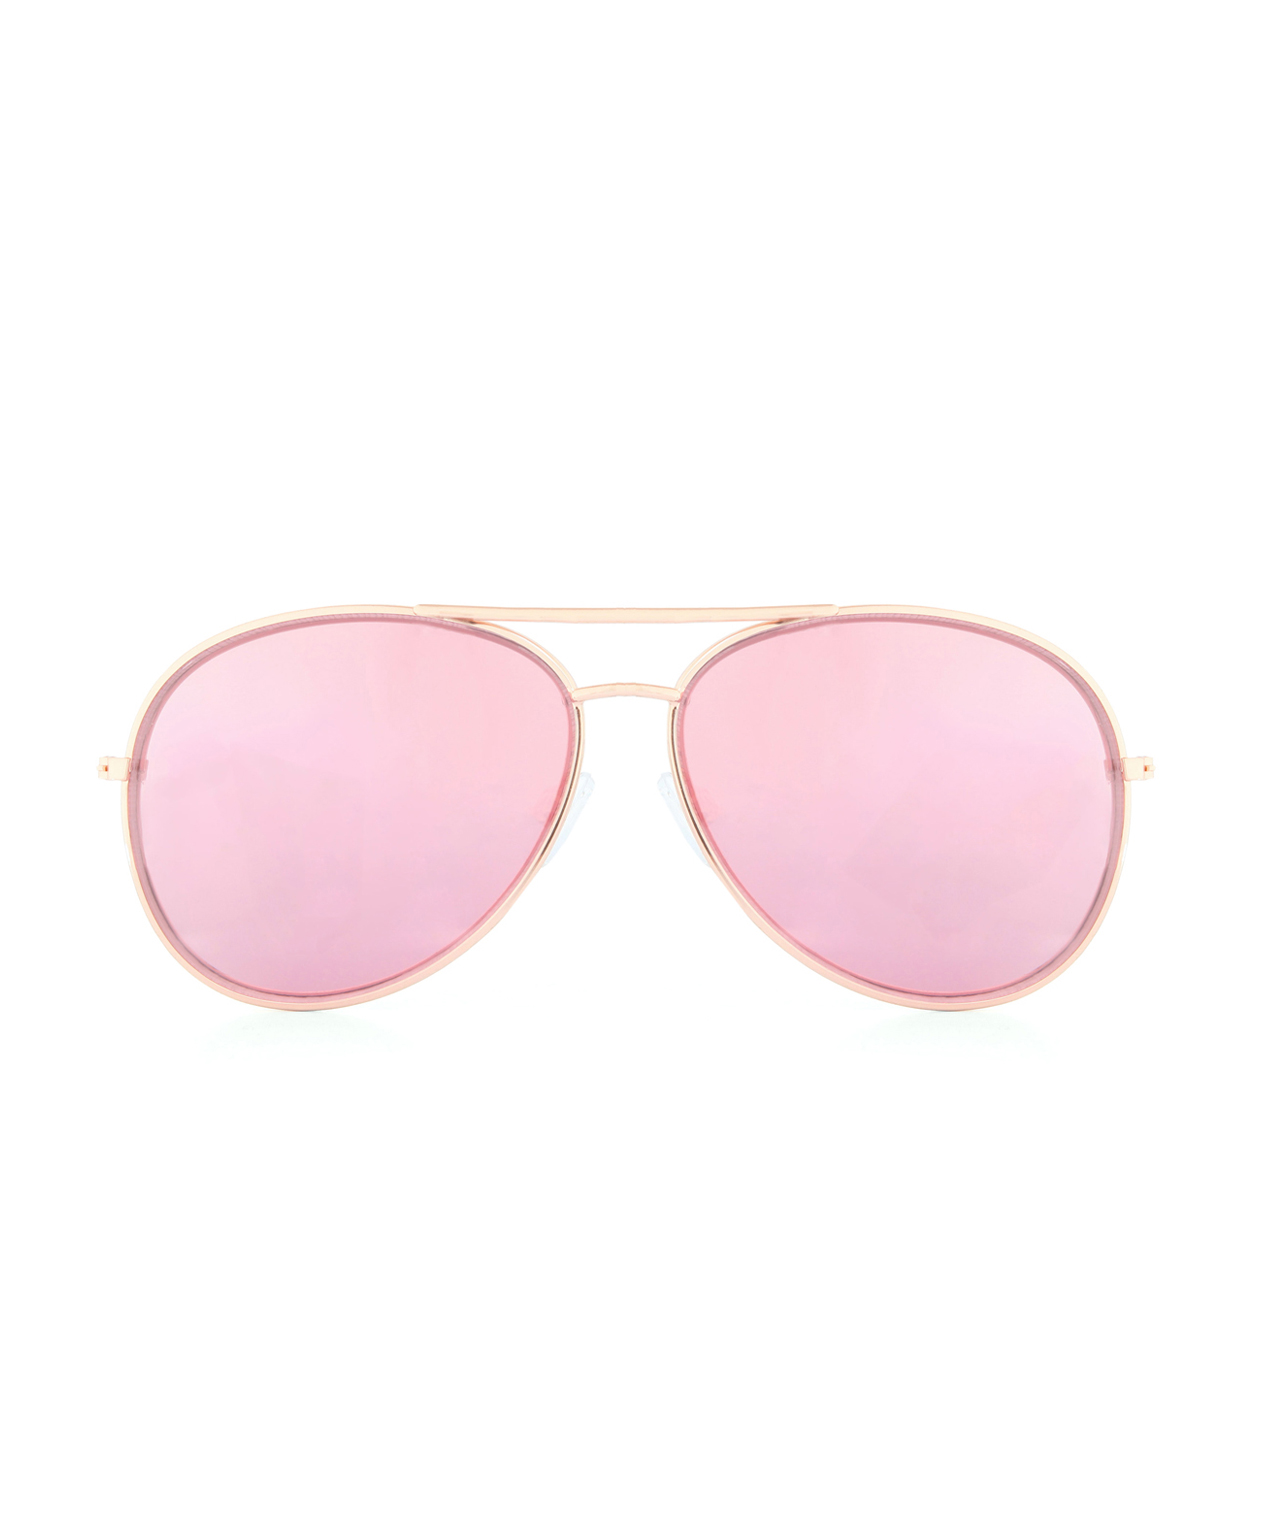 Rose Tinted Sunglasses  gold aviators with rose tinted lenses kismet